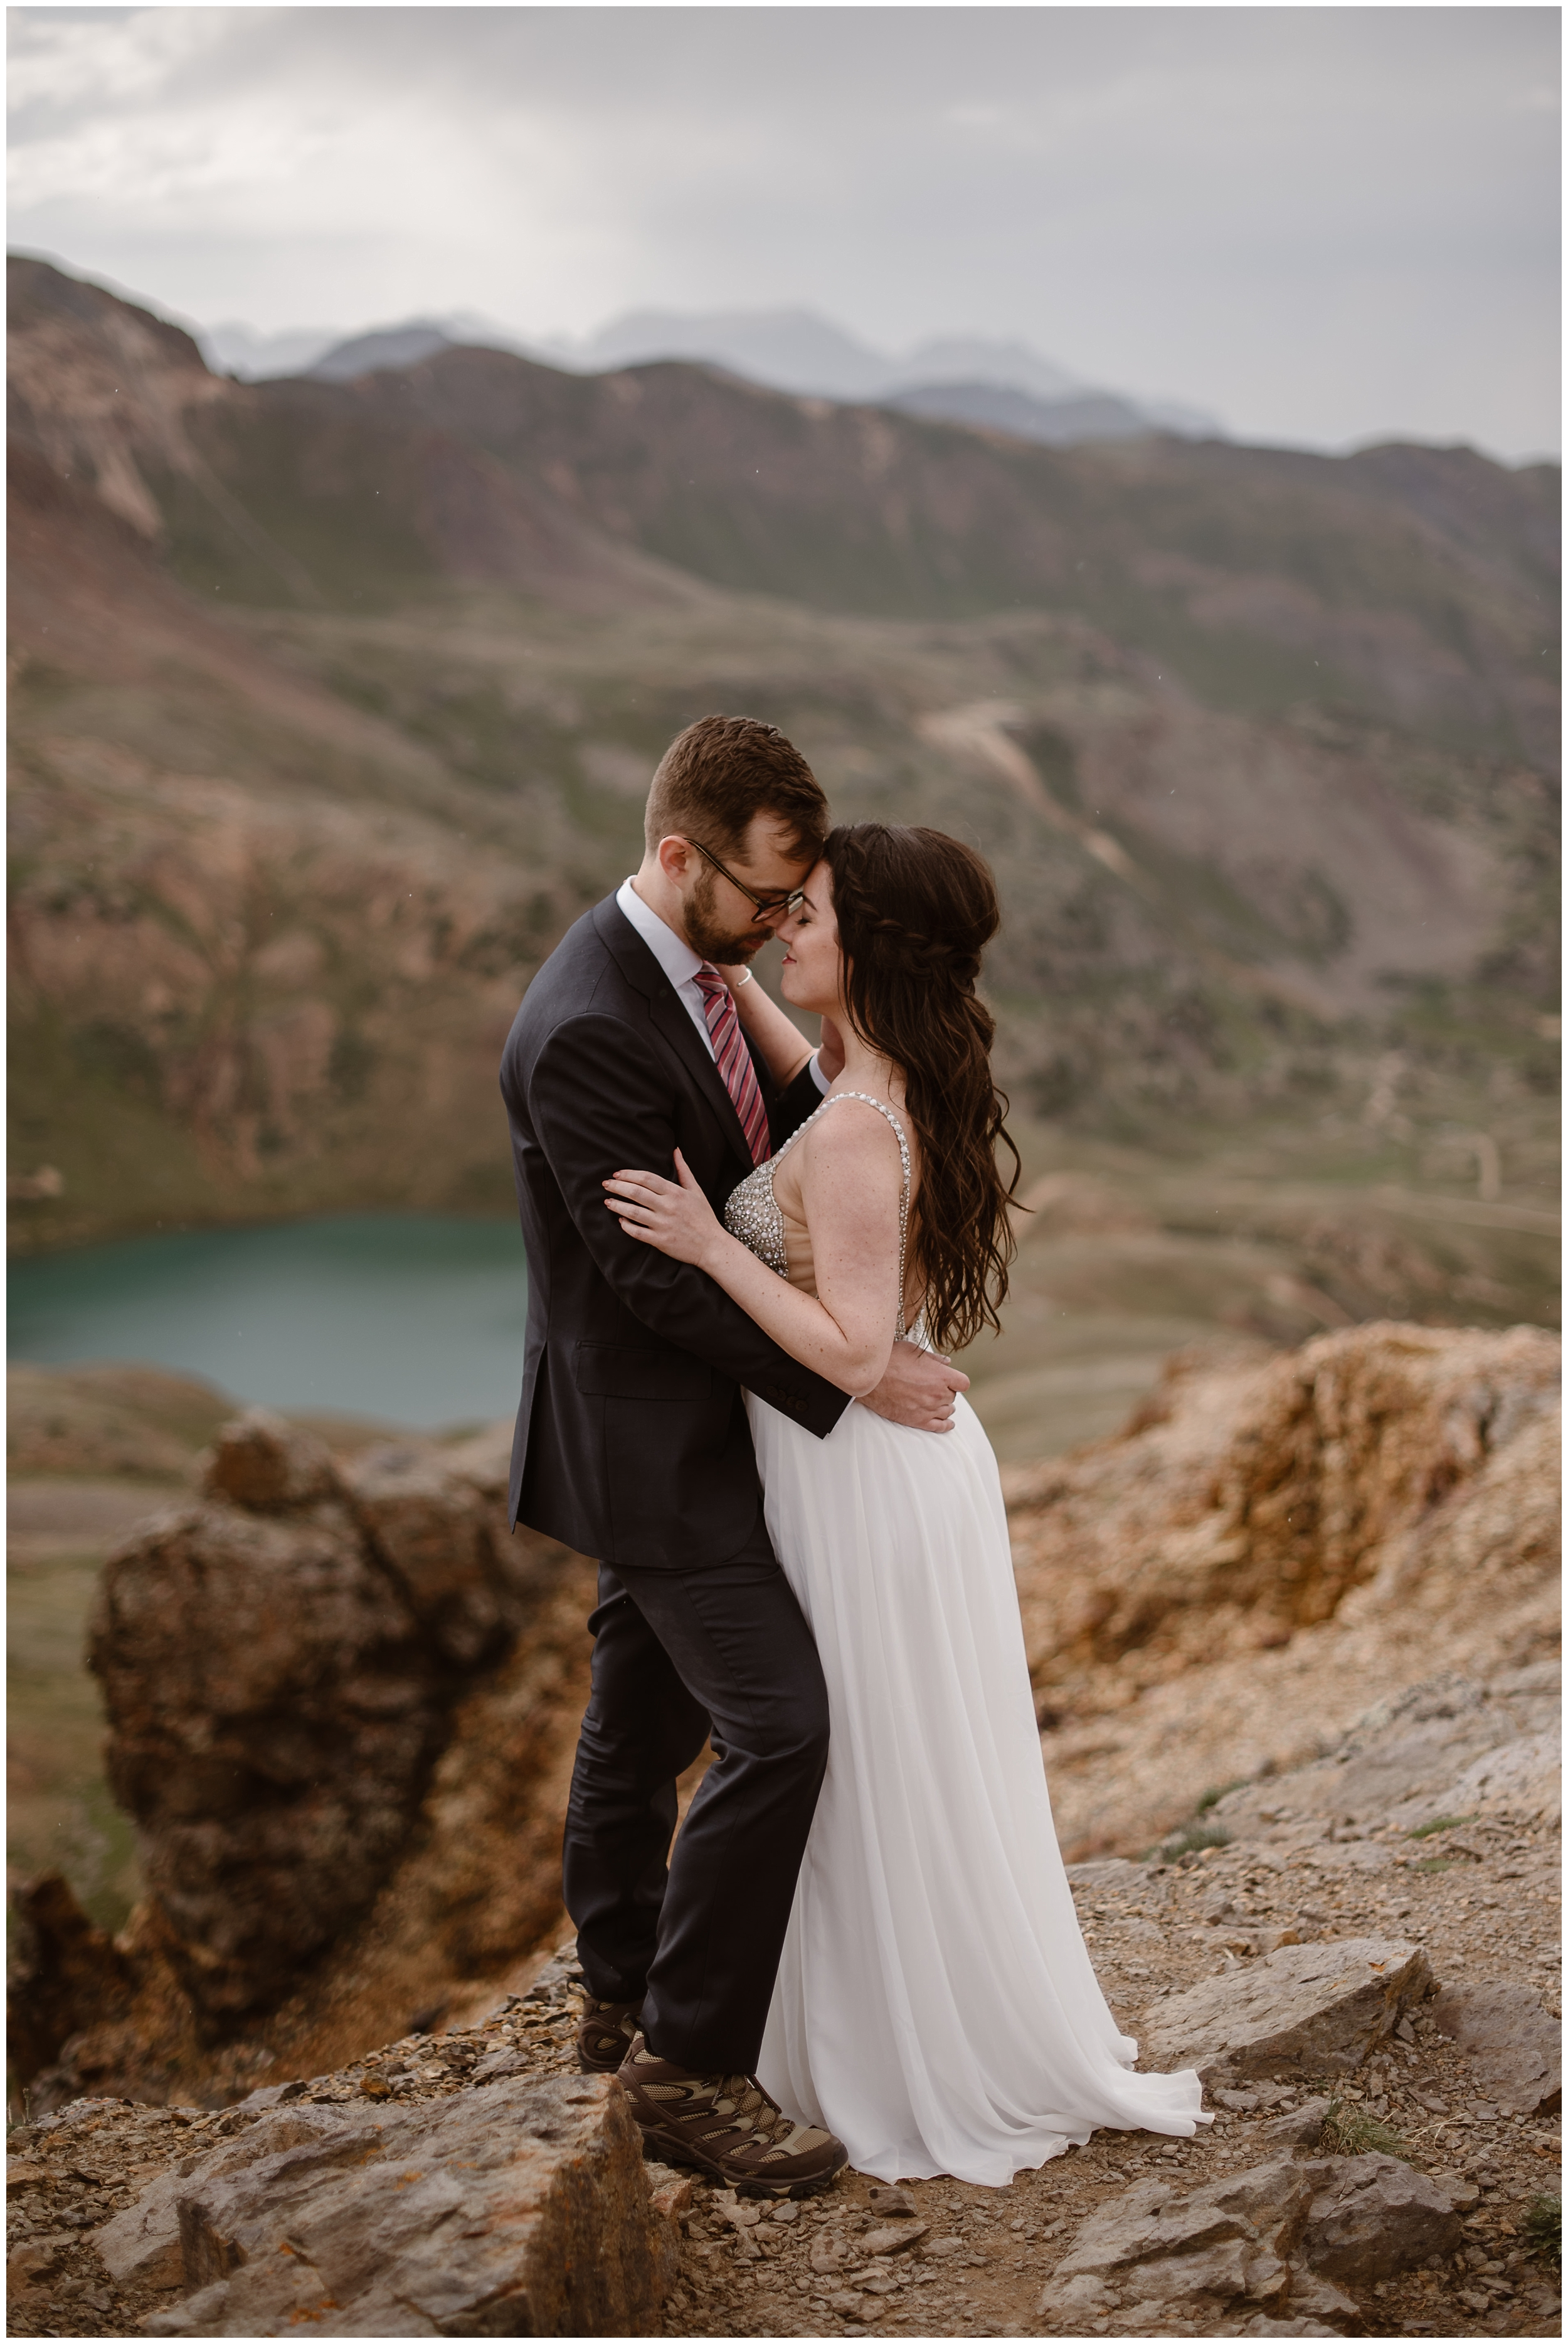 Katie and Logan, the bride and groom, embrace and hold their foreheads close together at the top of a rocky mountainside. Below them, a turquoise alpine lake is shown at the bottom of the basin. This location was one of the best elopement ideas that Katie and Logan wanted for their Colorado mountain wedding.